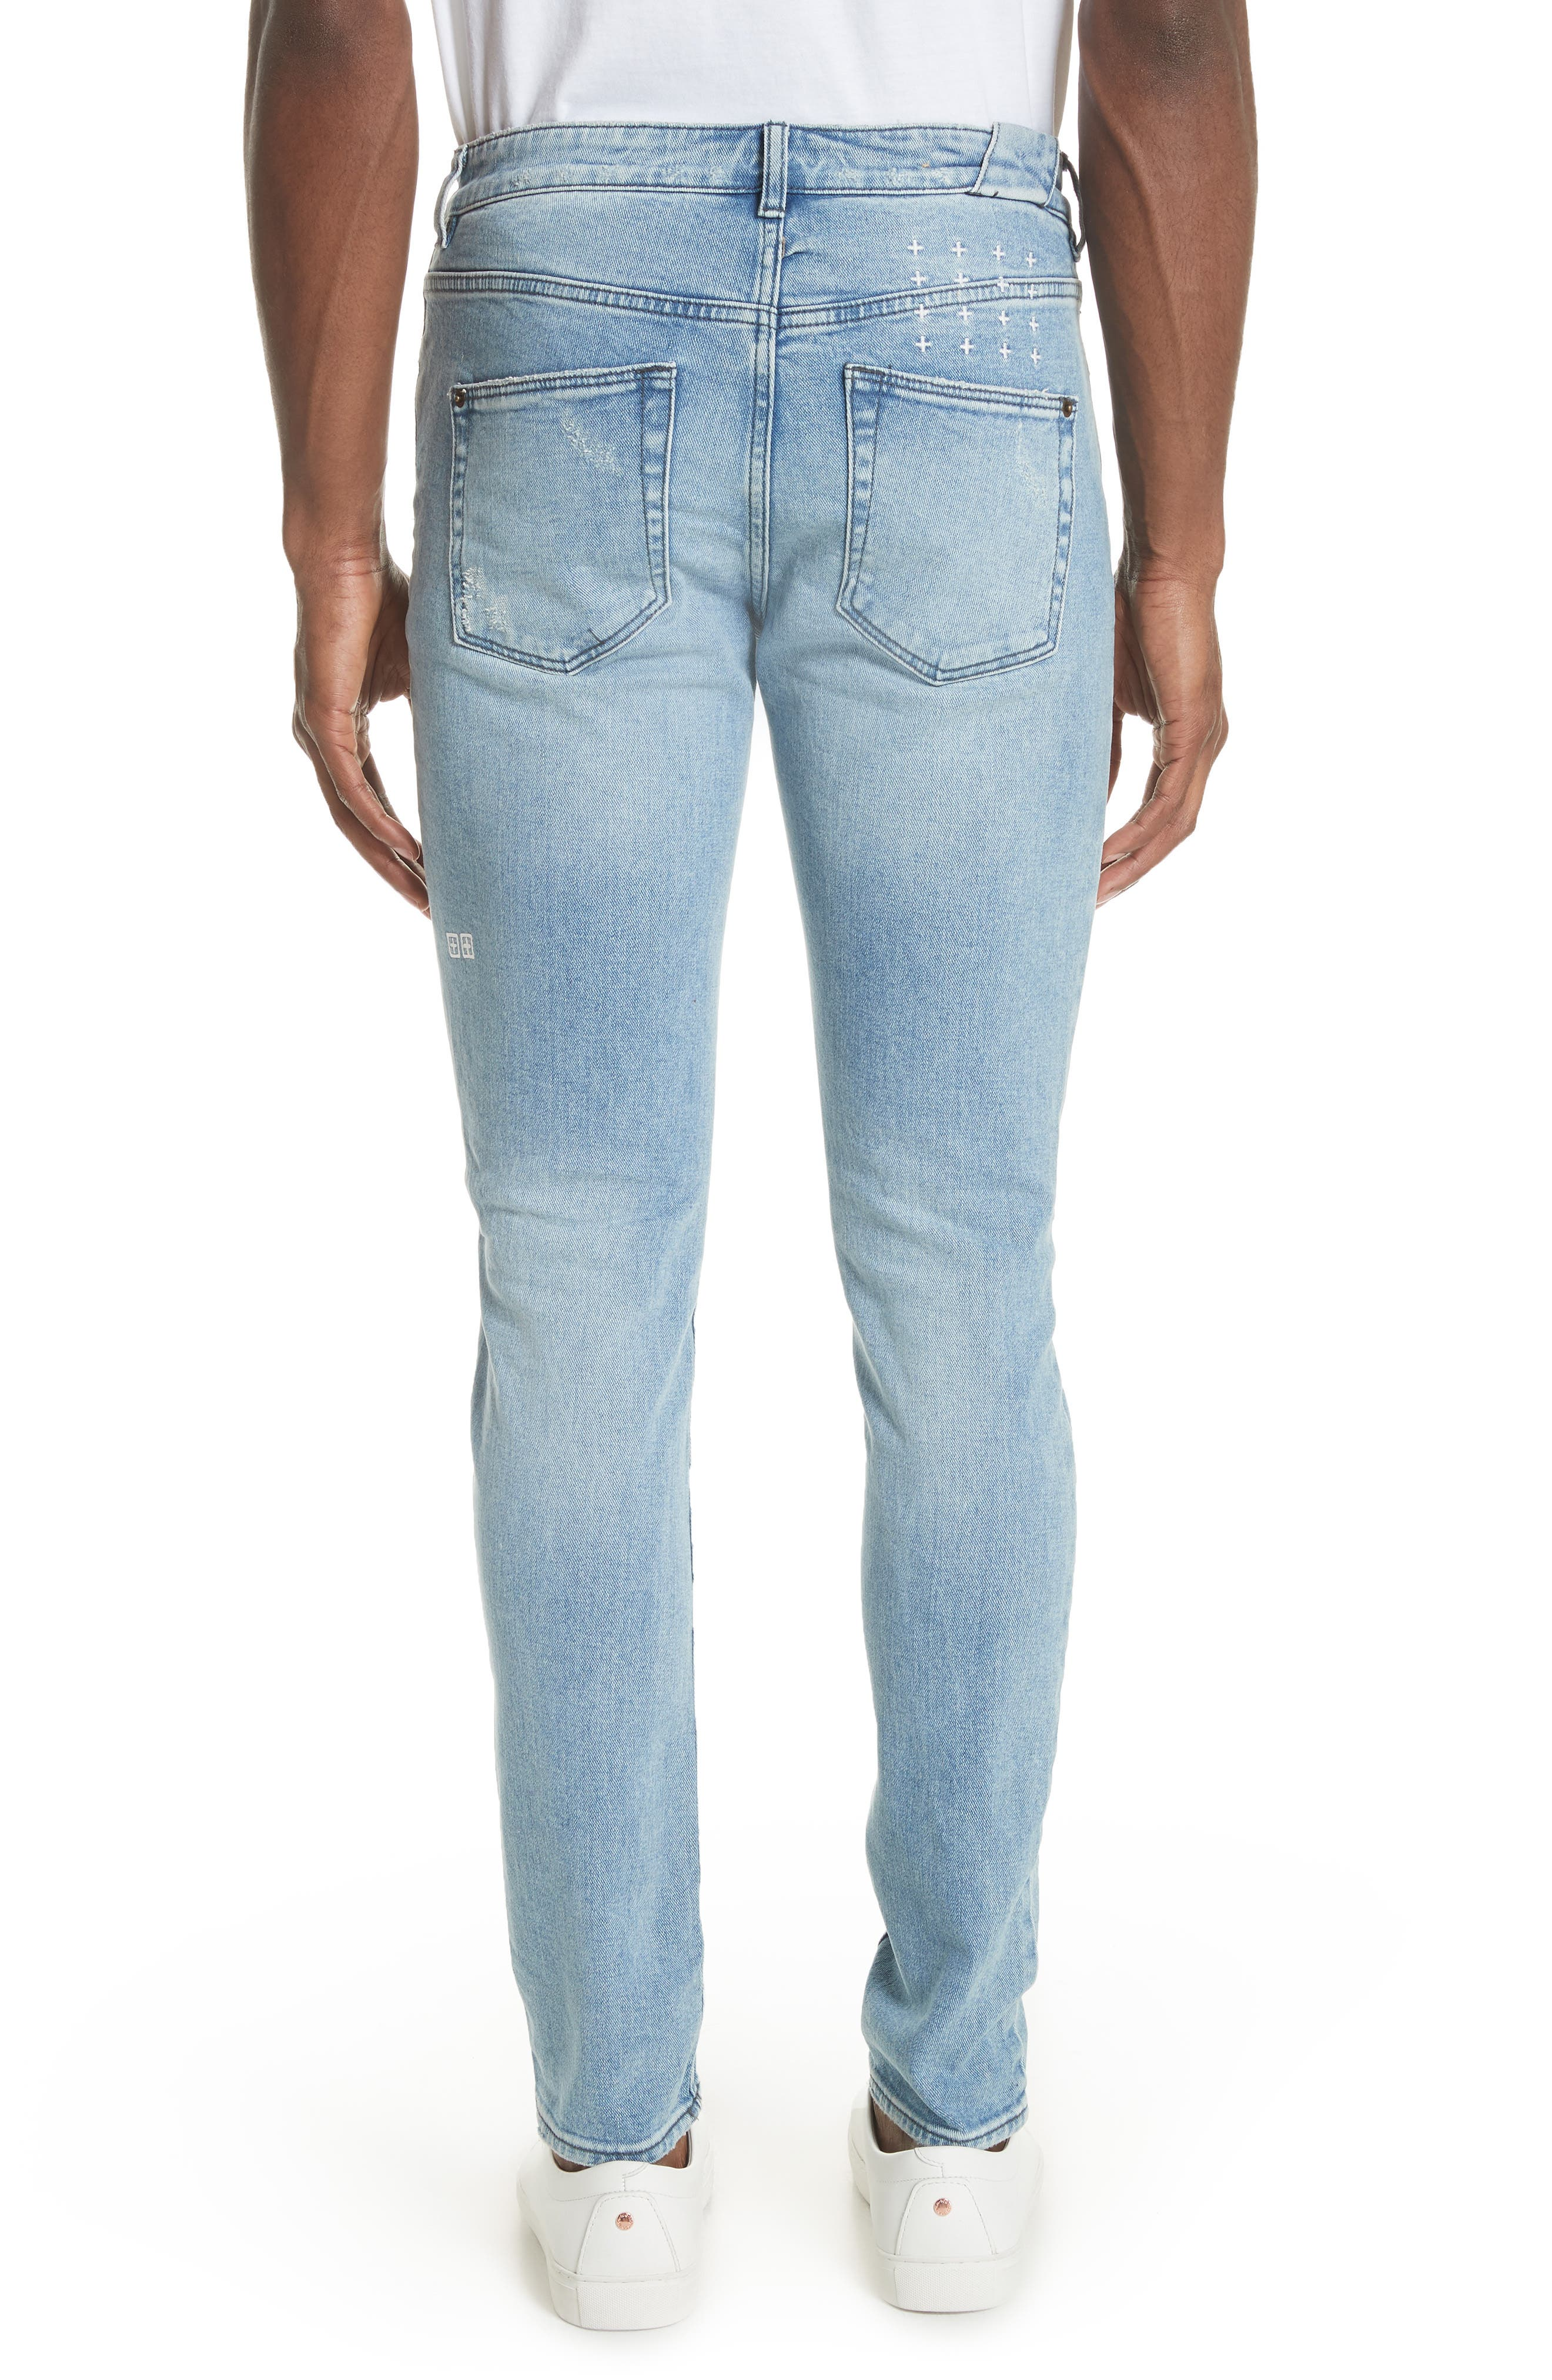 Chitch Philly Jeans,                             Alternate thumbnail 3, color,                             BLUE